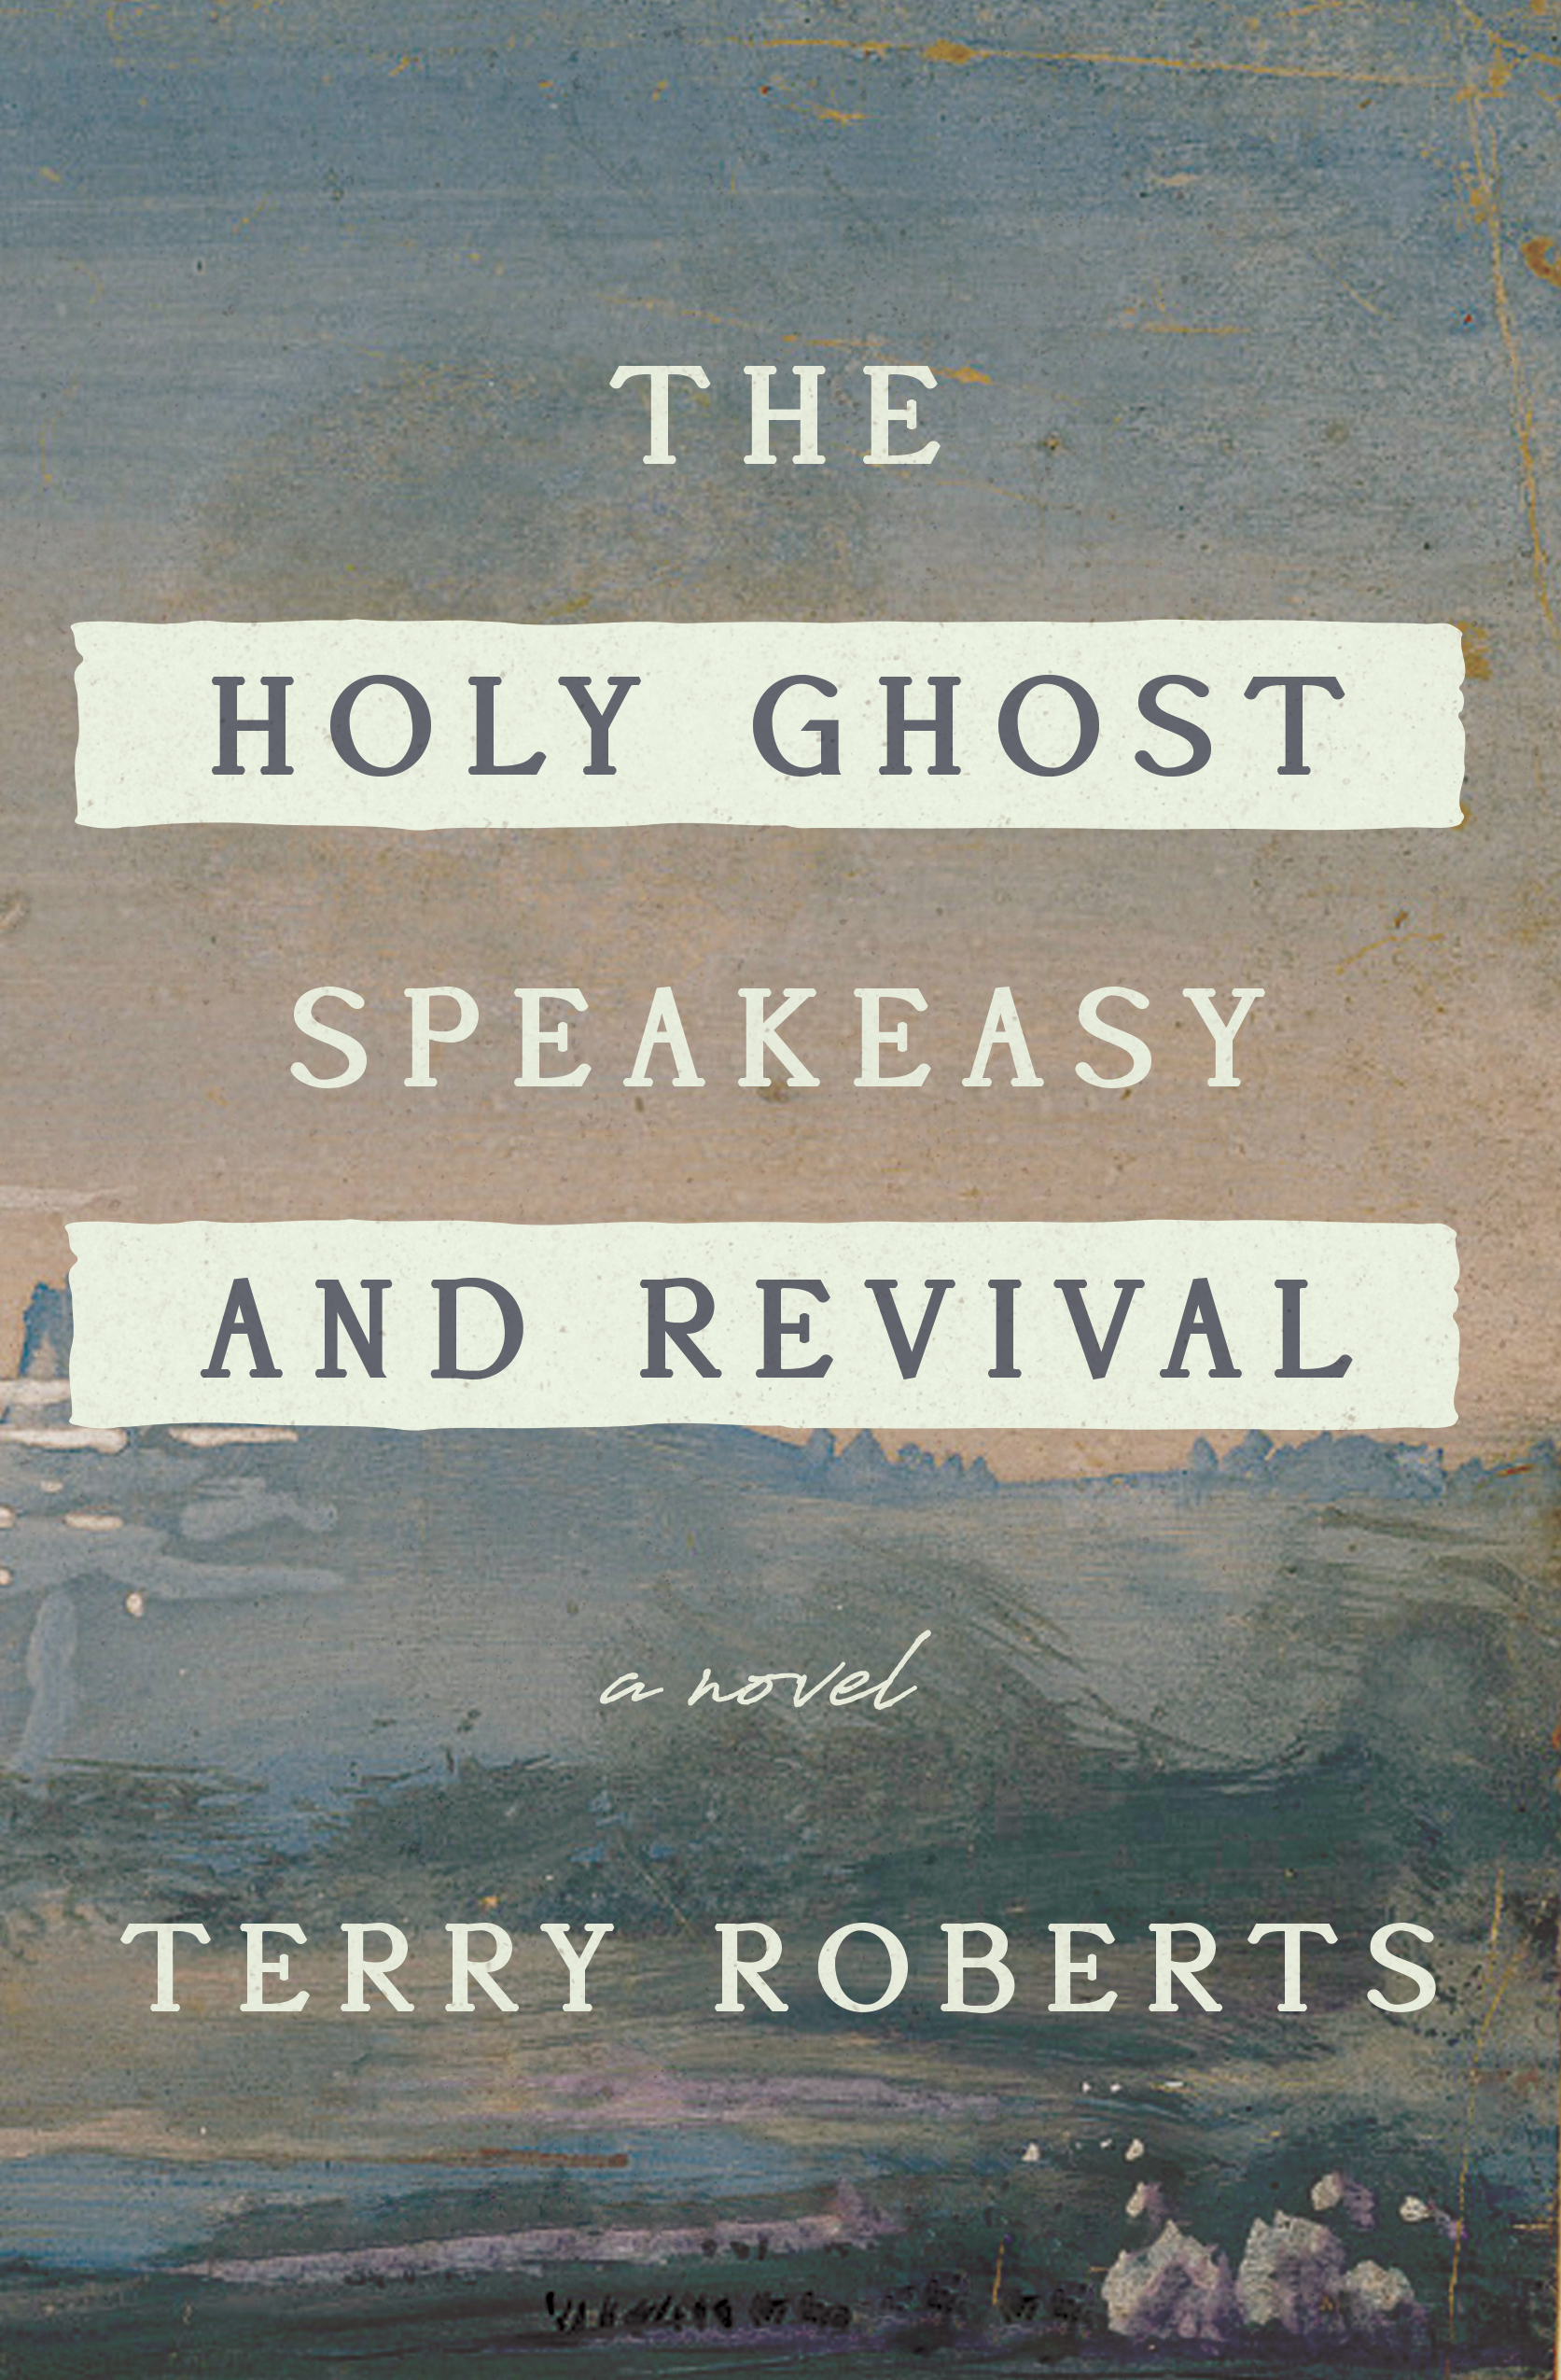 The Holy Ghost Speakeasy adn Revival by Terry Roberts